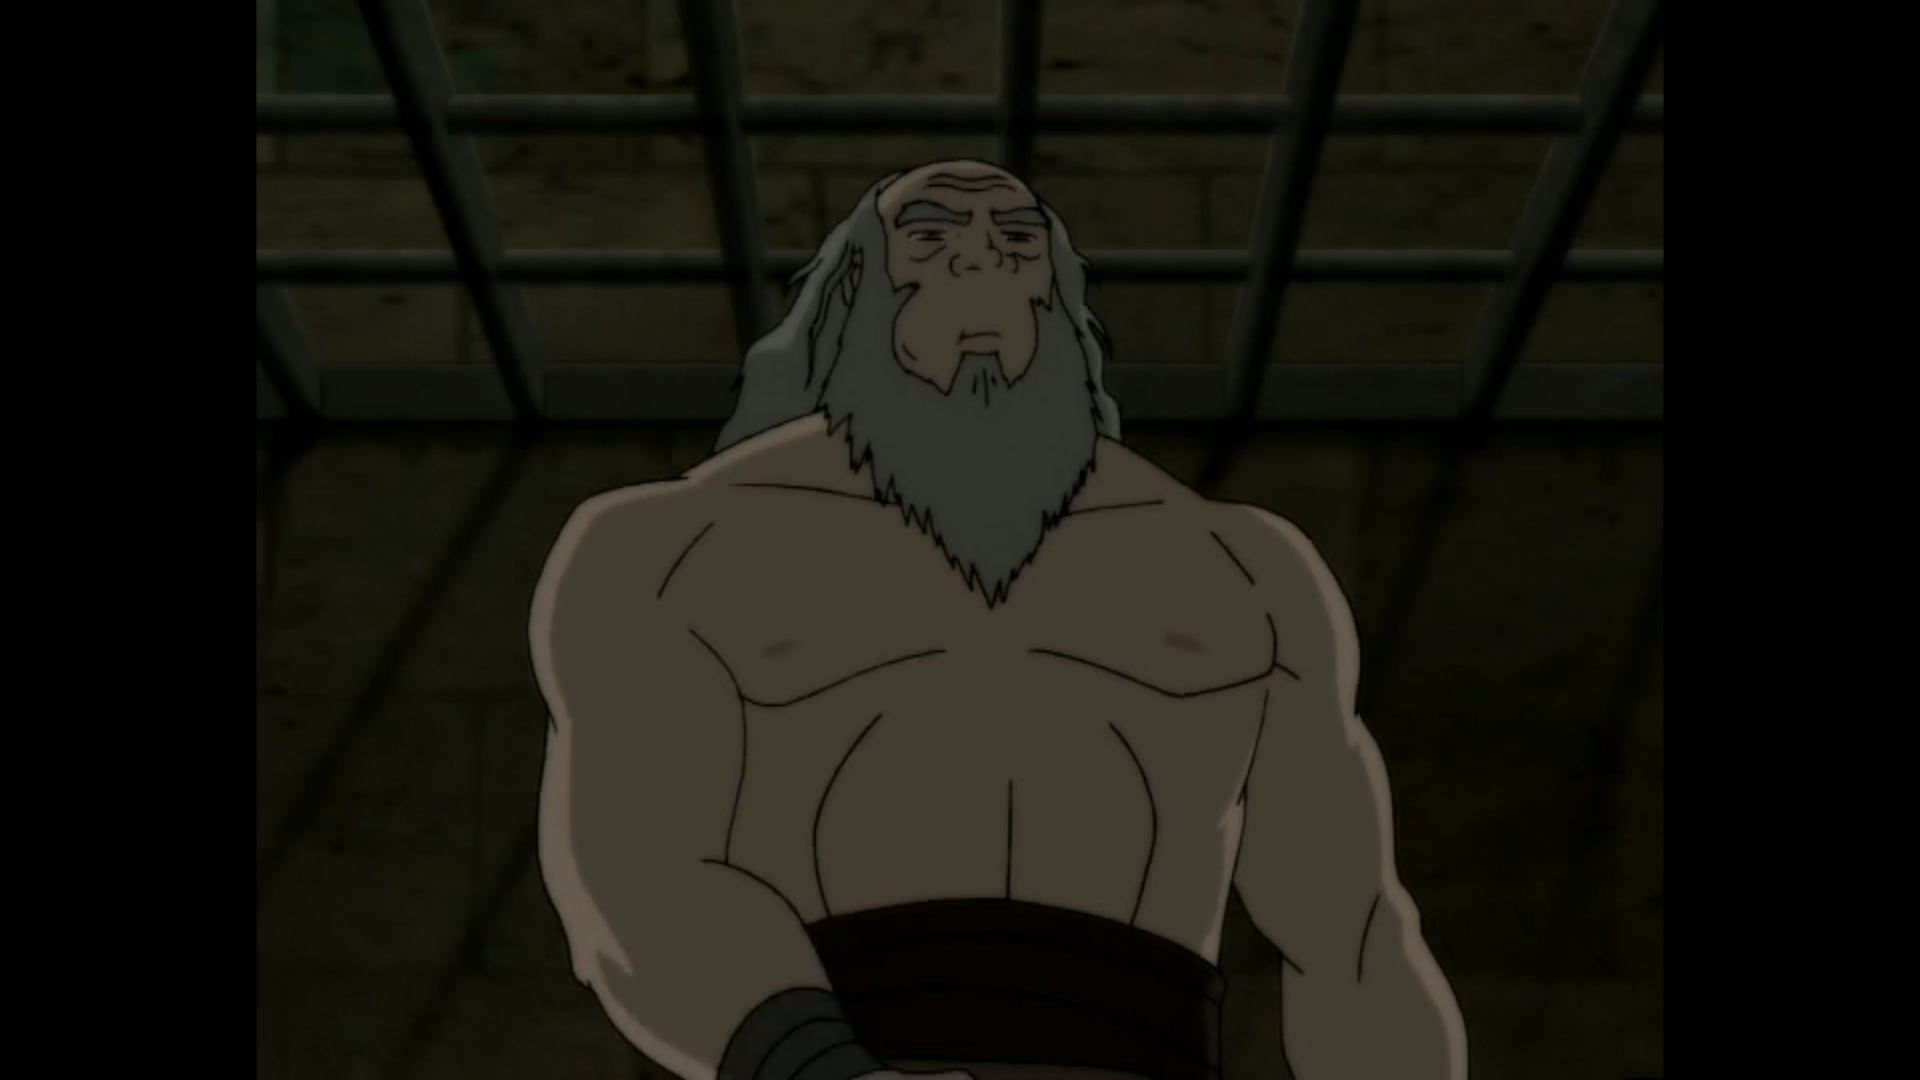 SUPRISE: Uncle Iroh is actually super jacked.